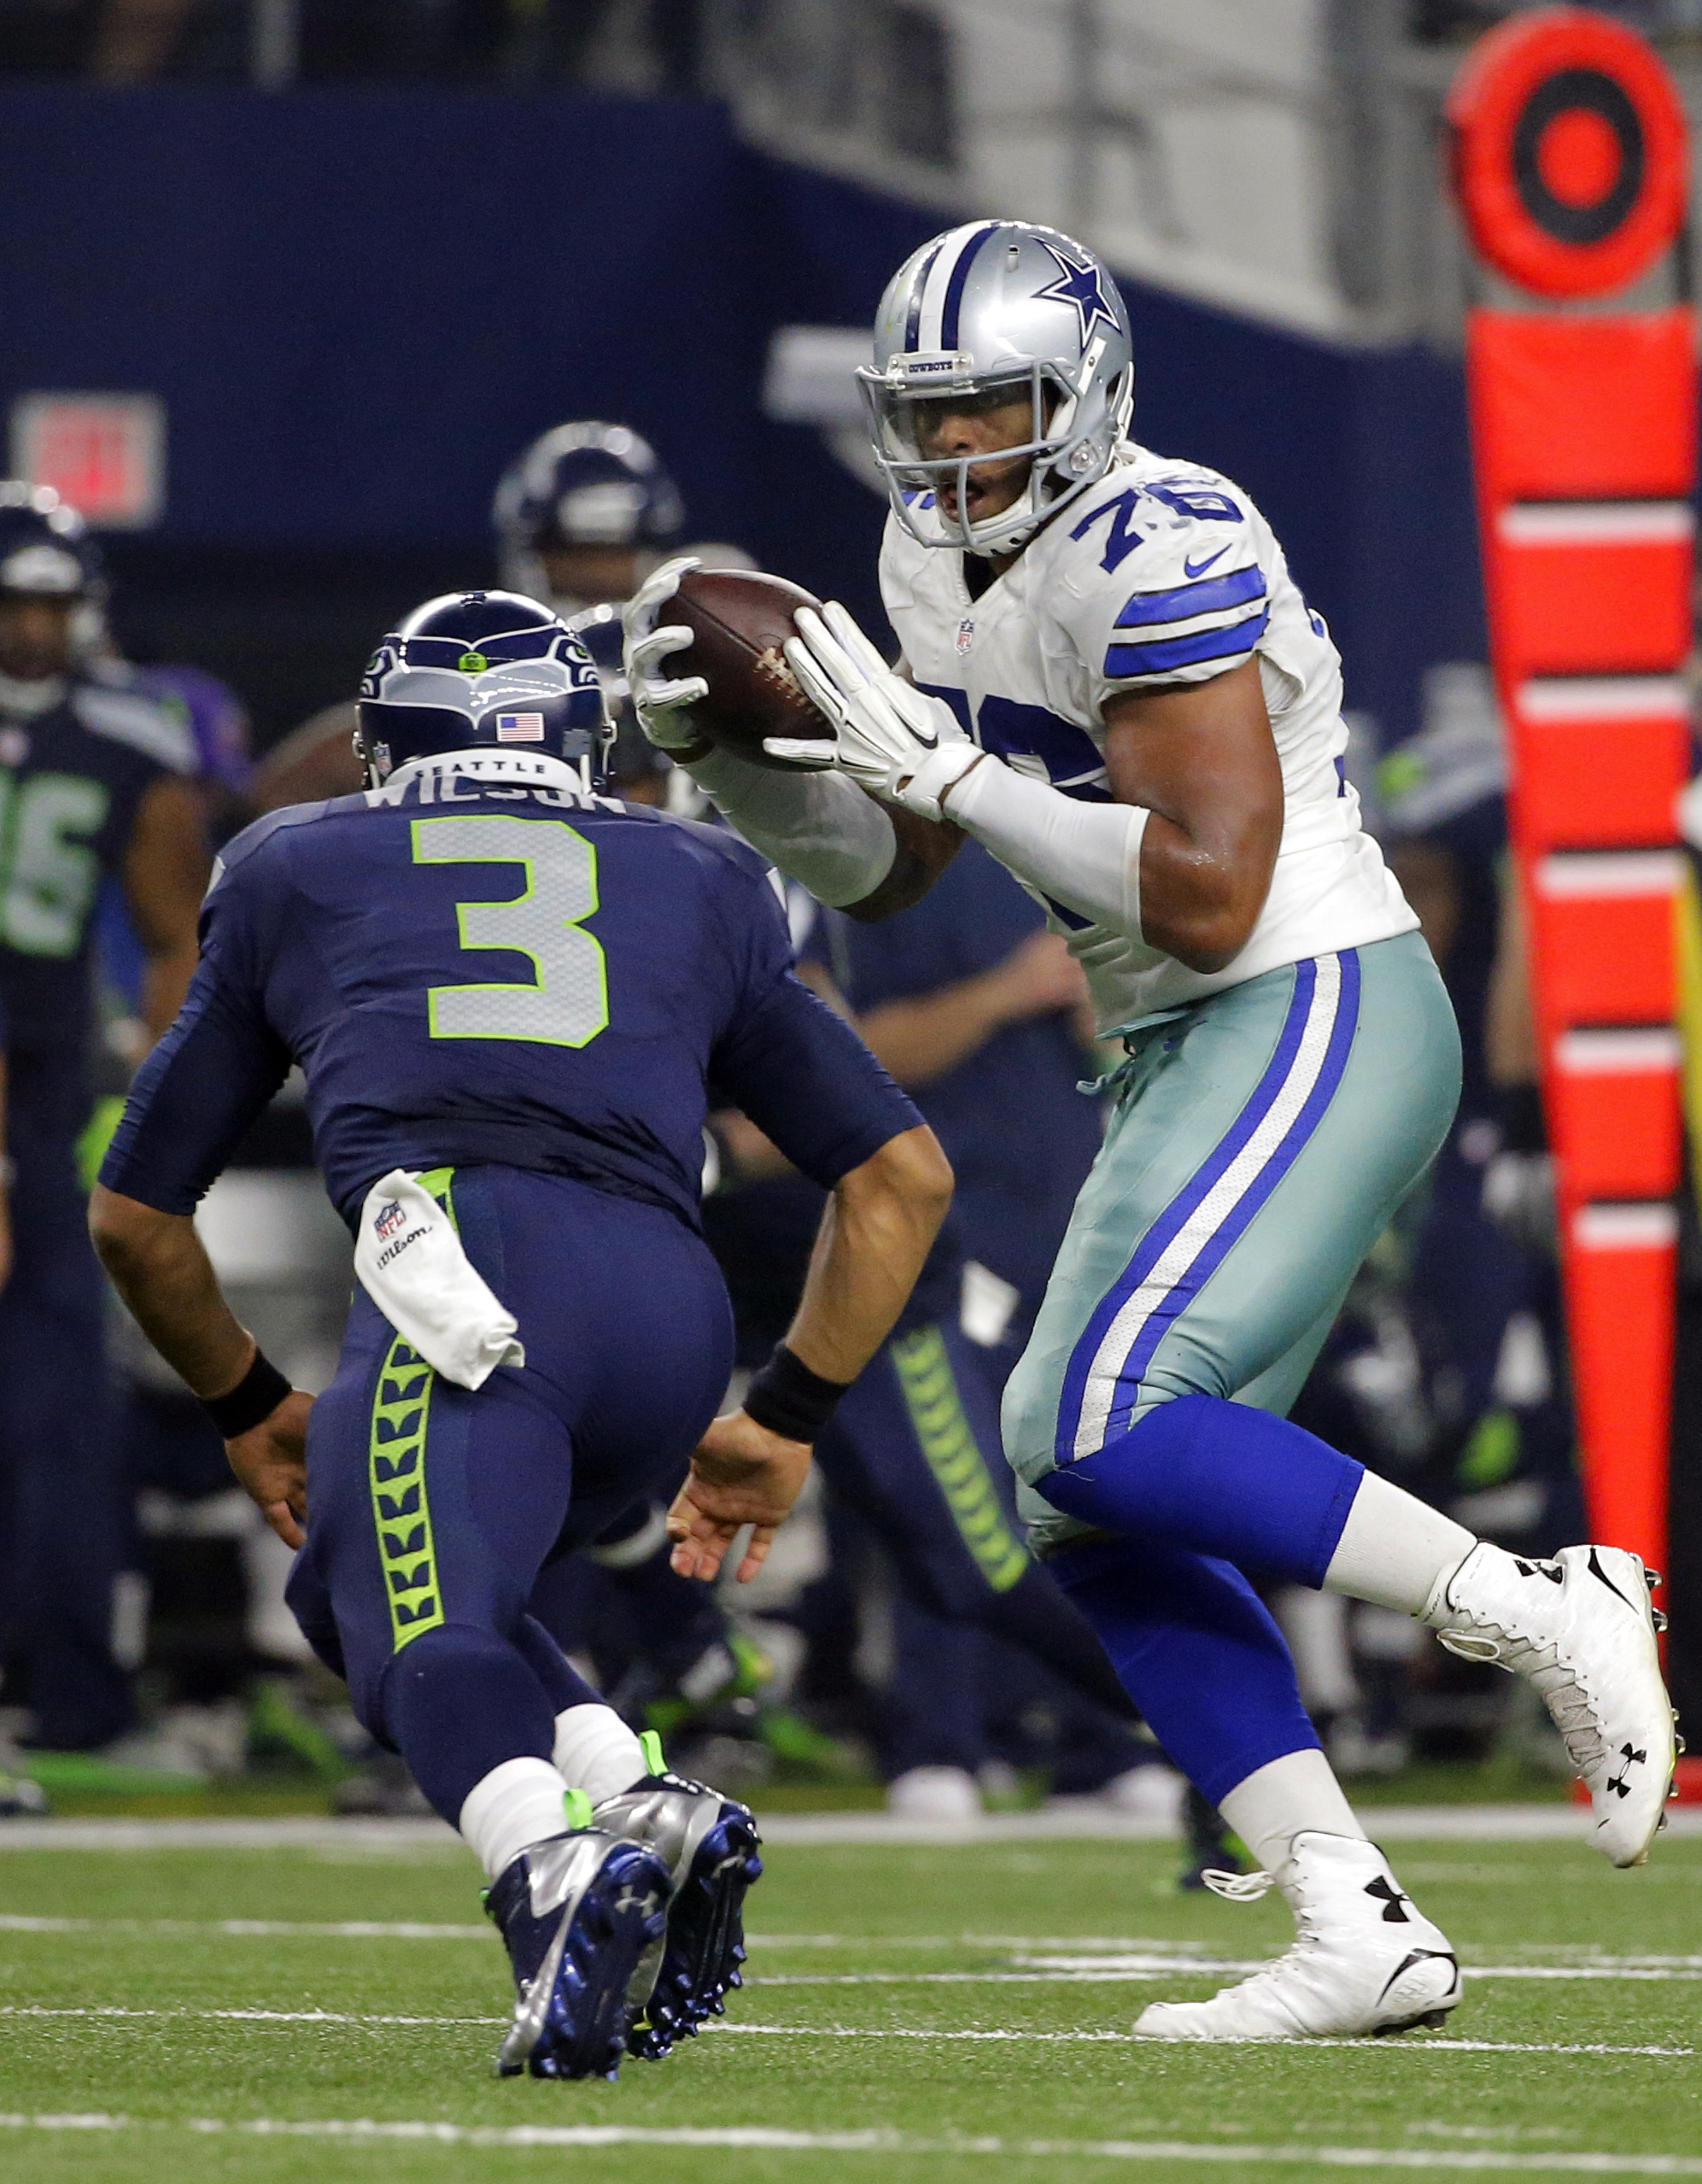 Seattle Seahawks quarterback Russell Wilson (3) runs to tackle Dallas Cowboys' Greg Hardy (76) who intercepted a pass from Wilson in the second half of an NFL football game Sunday, Nov. 1, 2015, in Arlington, Texas. (AP Photo/Brandon Wade)